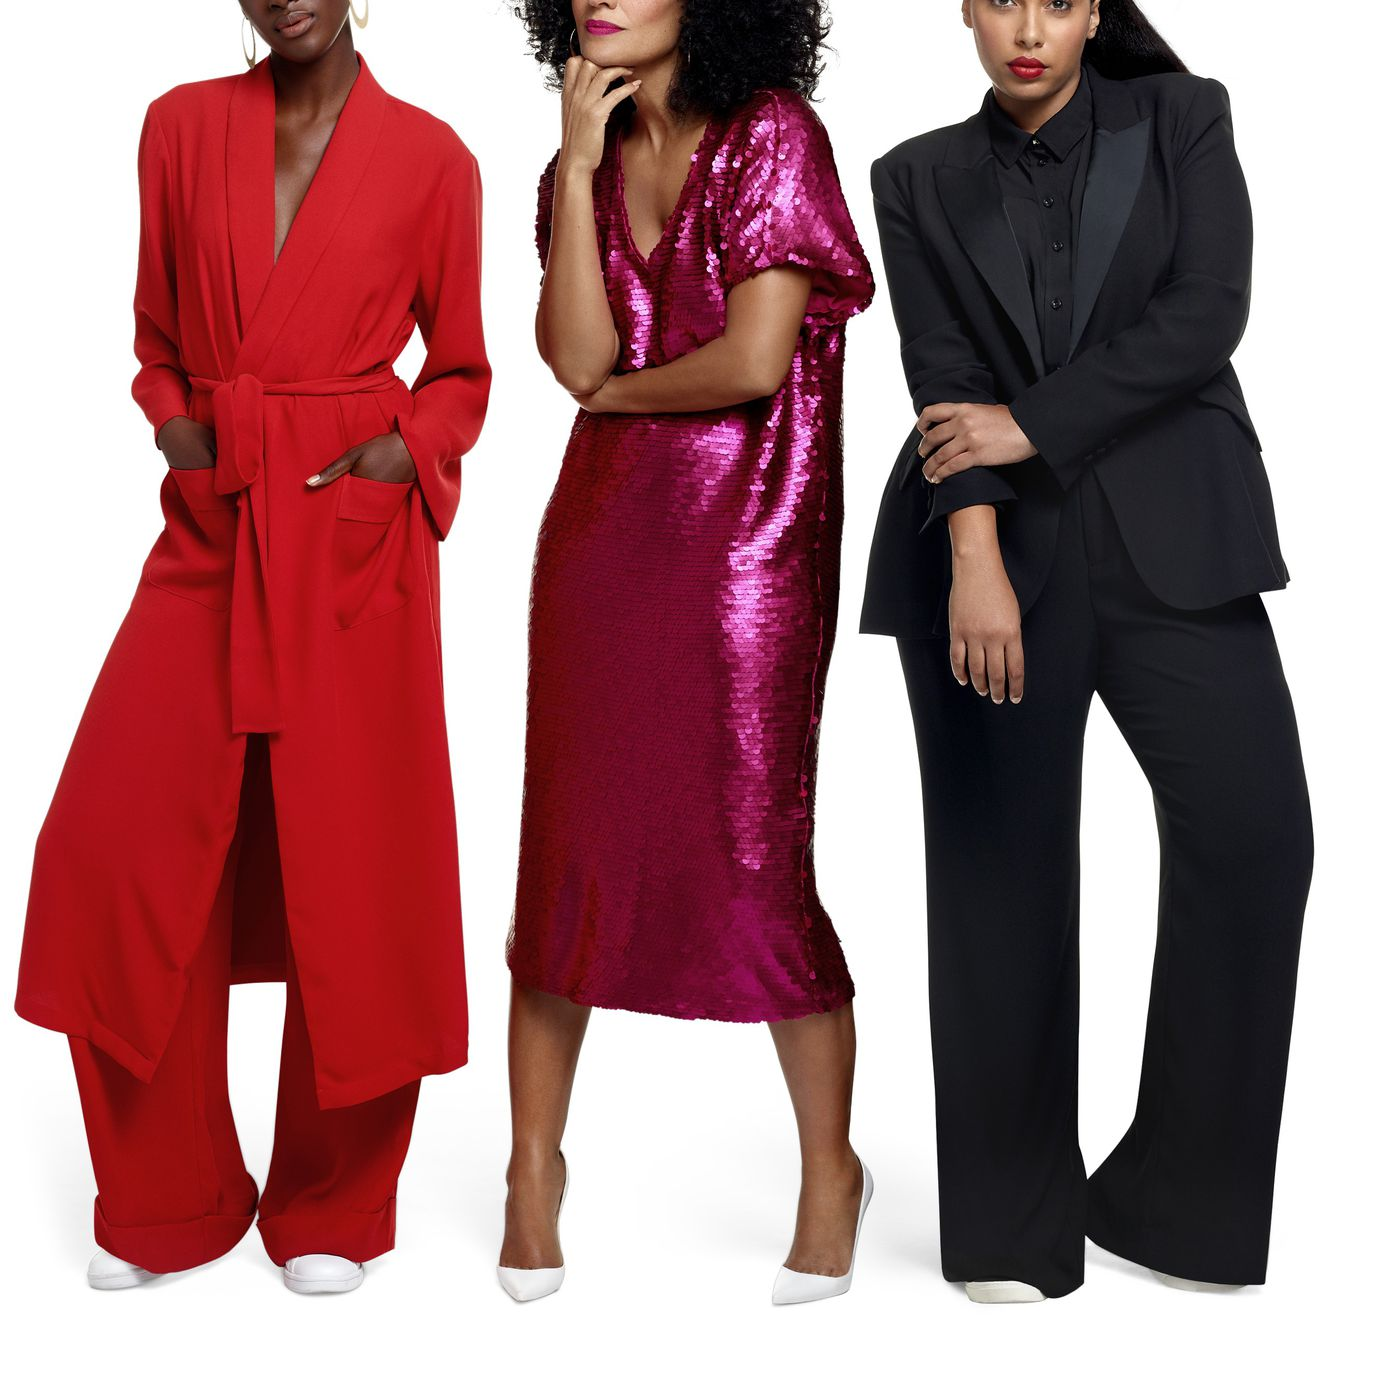 ea3691a3 You Can Finally Shop the Tracee Ellis Ross x J.C. Penney Collection Today